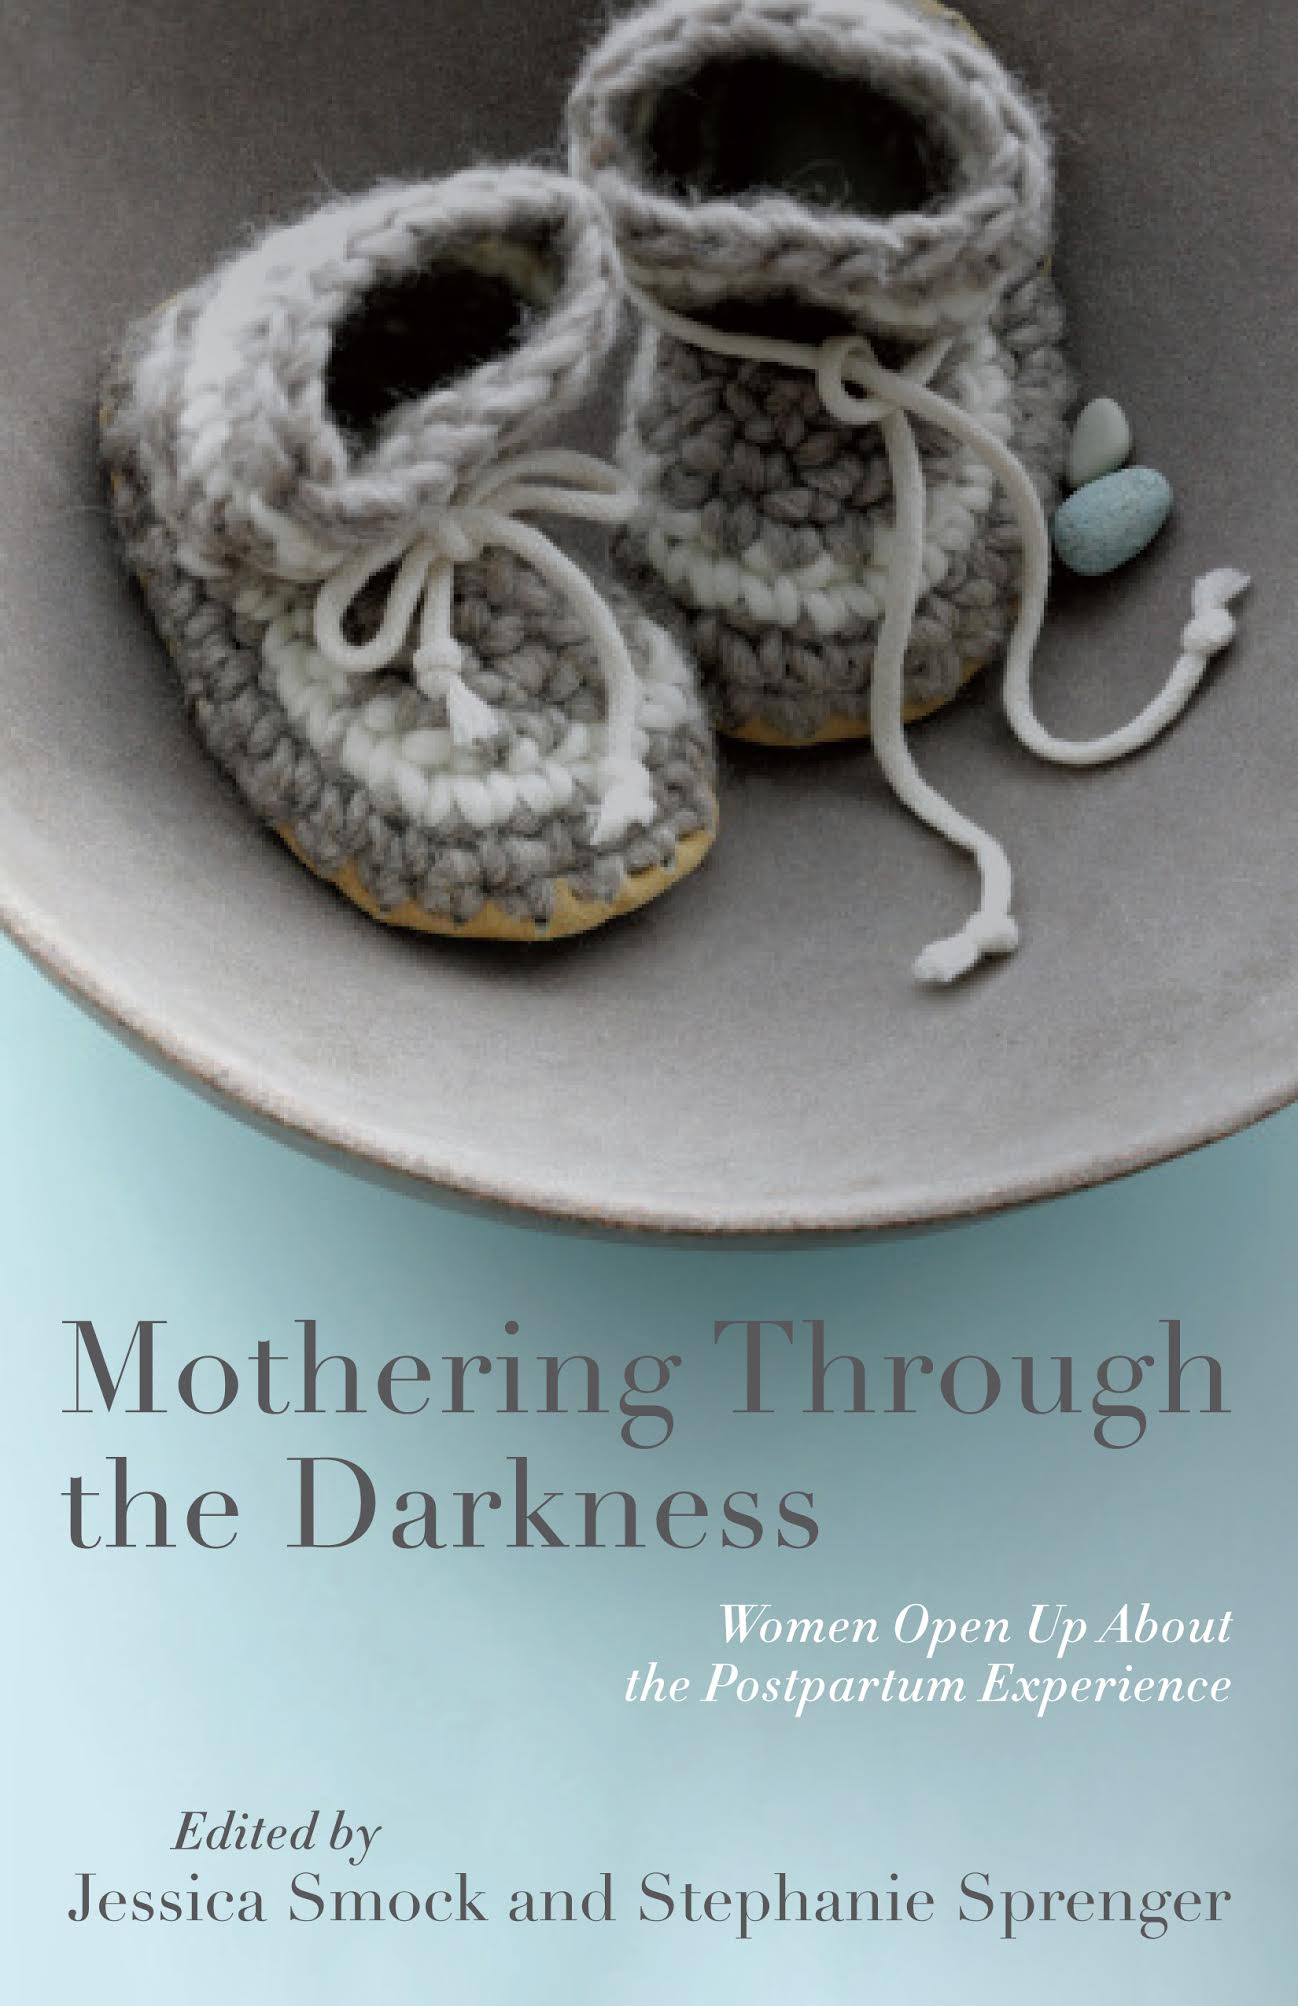 Mothering Through the Darkness